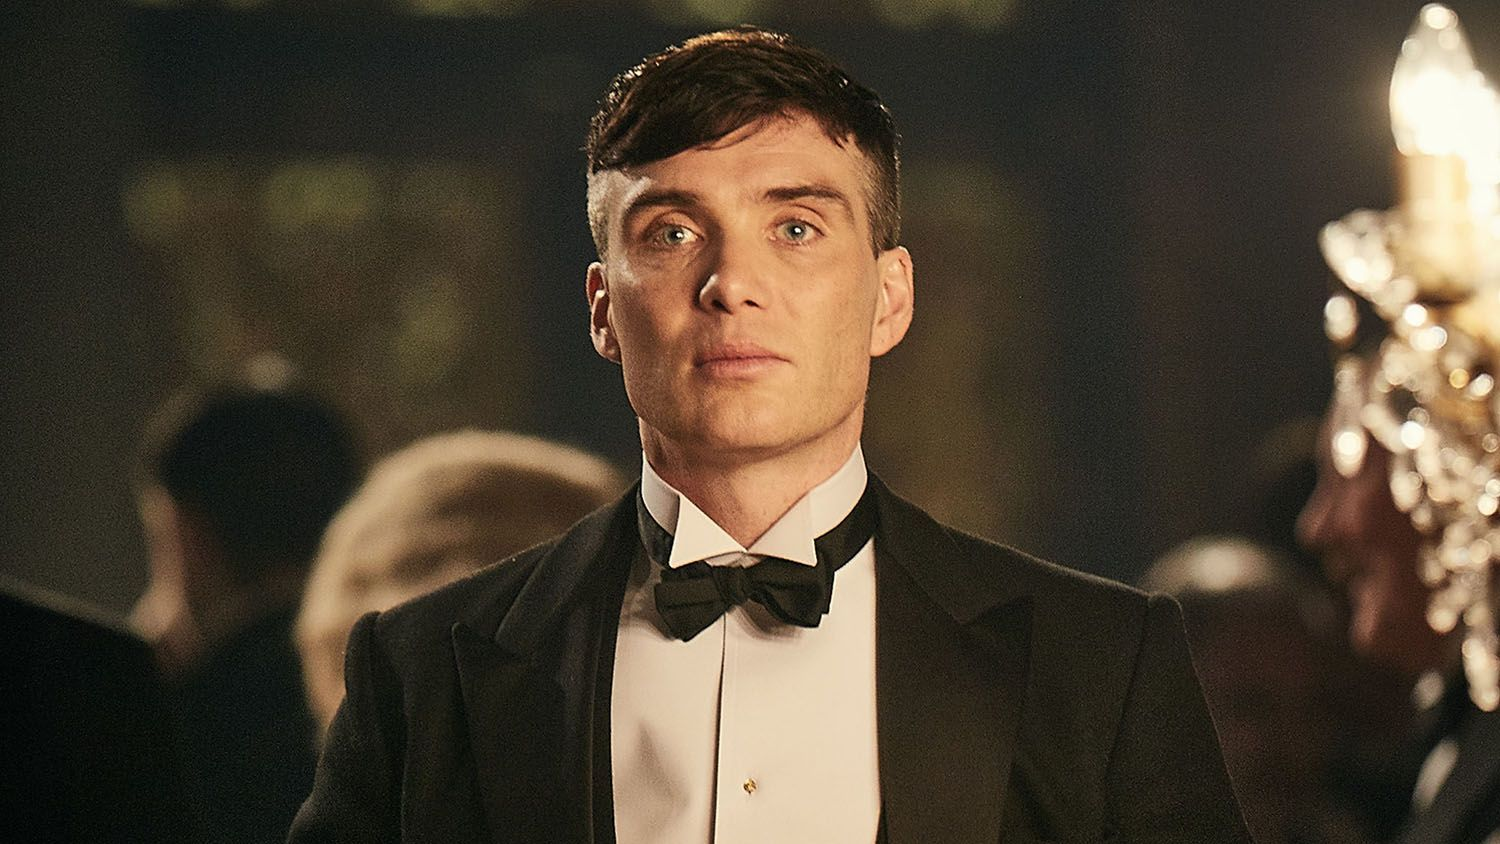 Cillian Murphy Thinks The Next James Bond Should Be A Woman